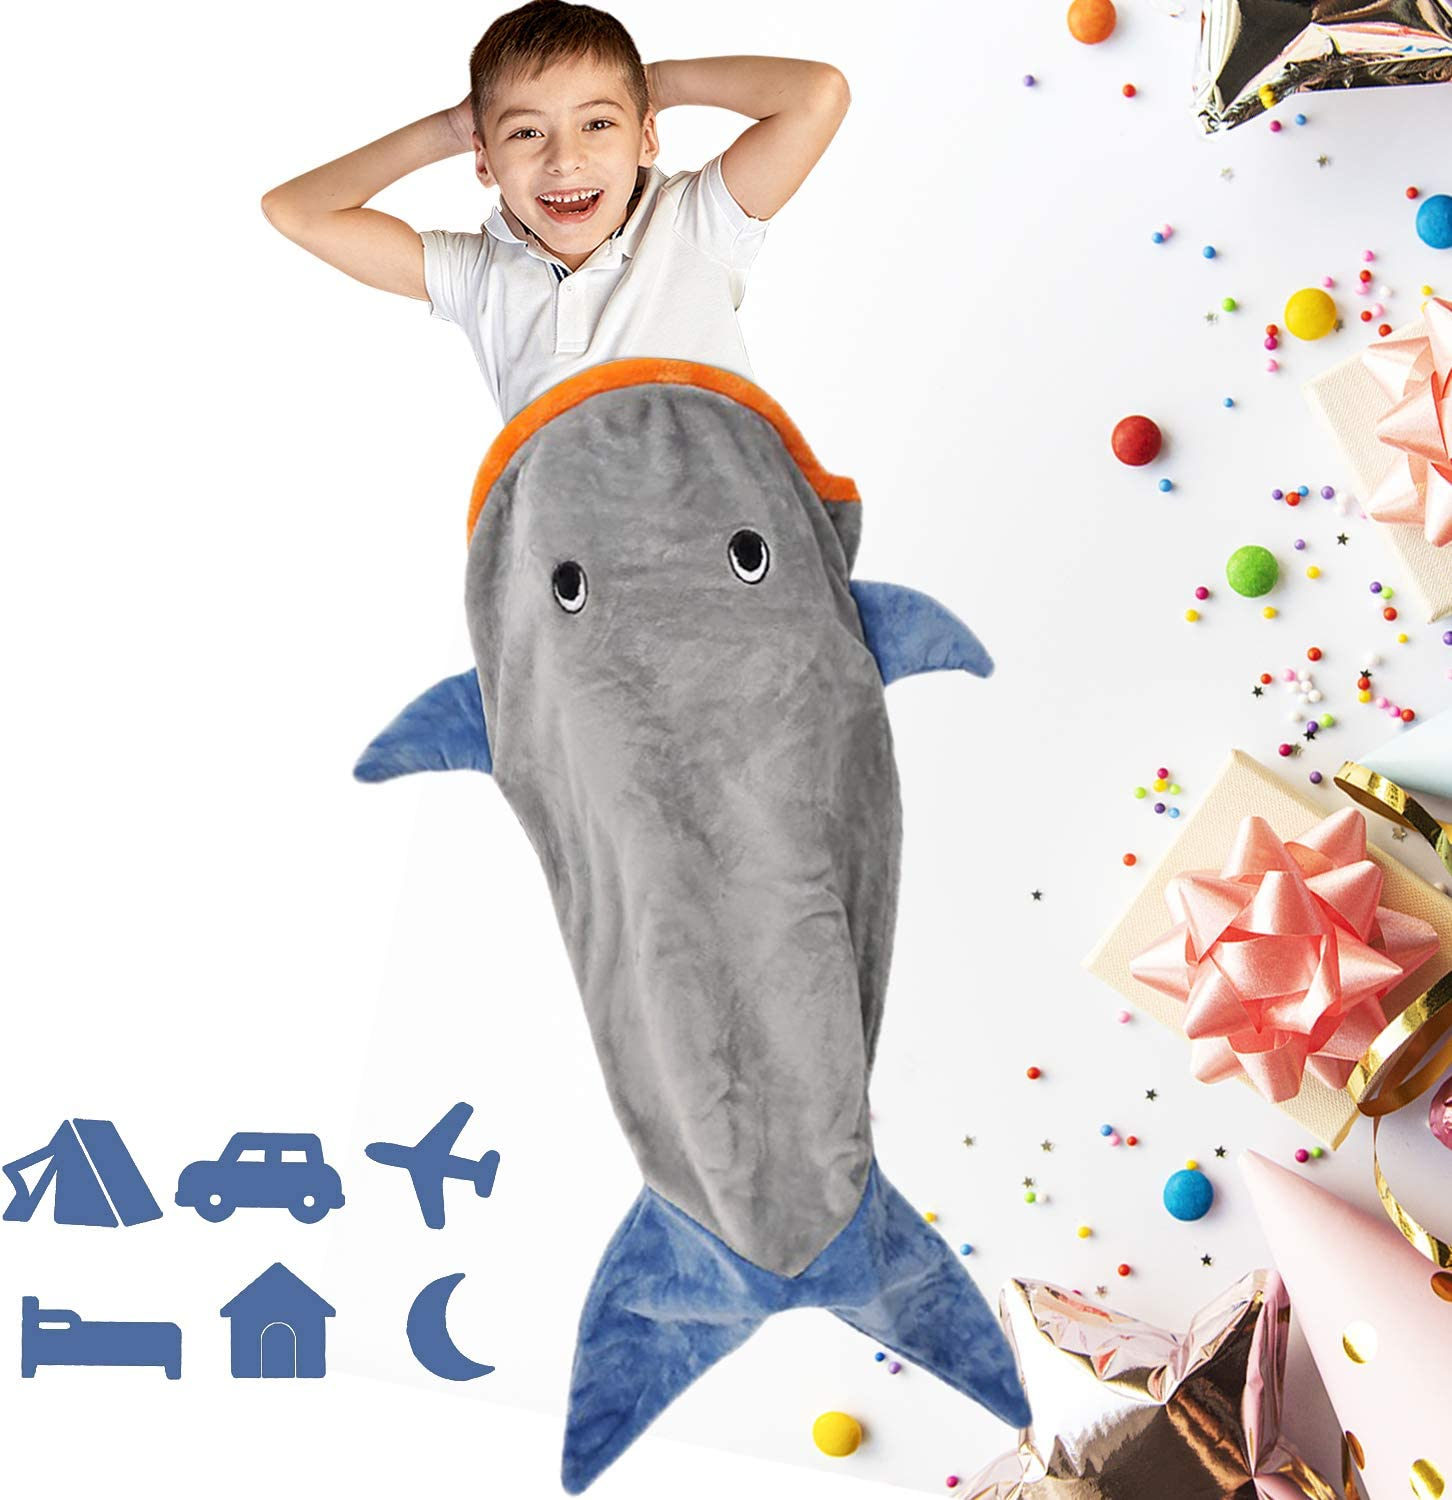 Baby Shark Sleeping Bag for Toddler Camping, Shark Tail Blanket for Boys Girls, Shark Snuggy Tail Throw Blanket, Shark Sleeping Bag for Children Bed, Idea Gift Use at Home, Camping or Traveling